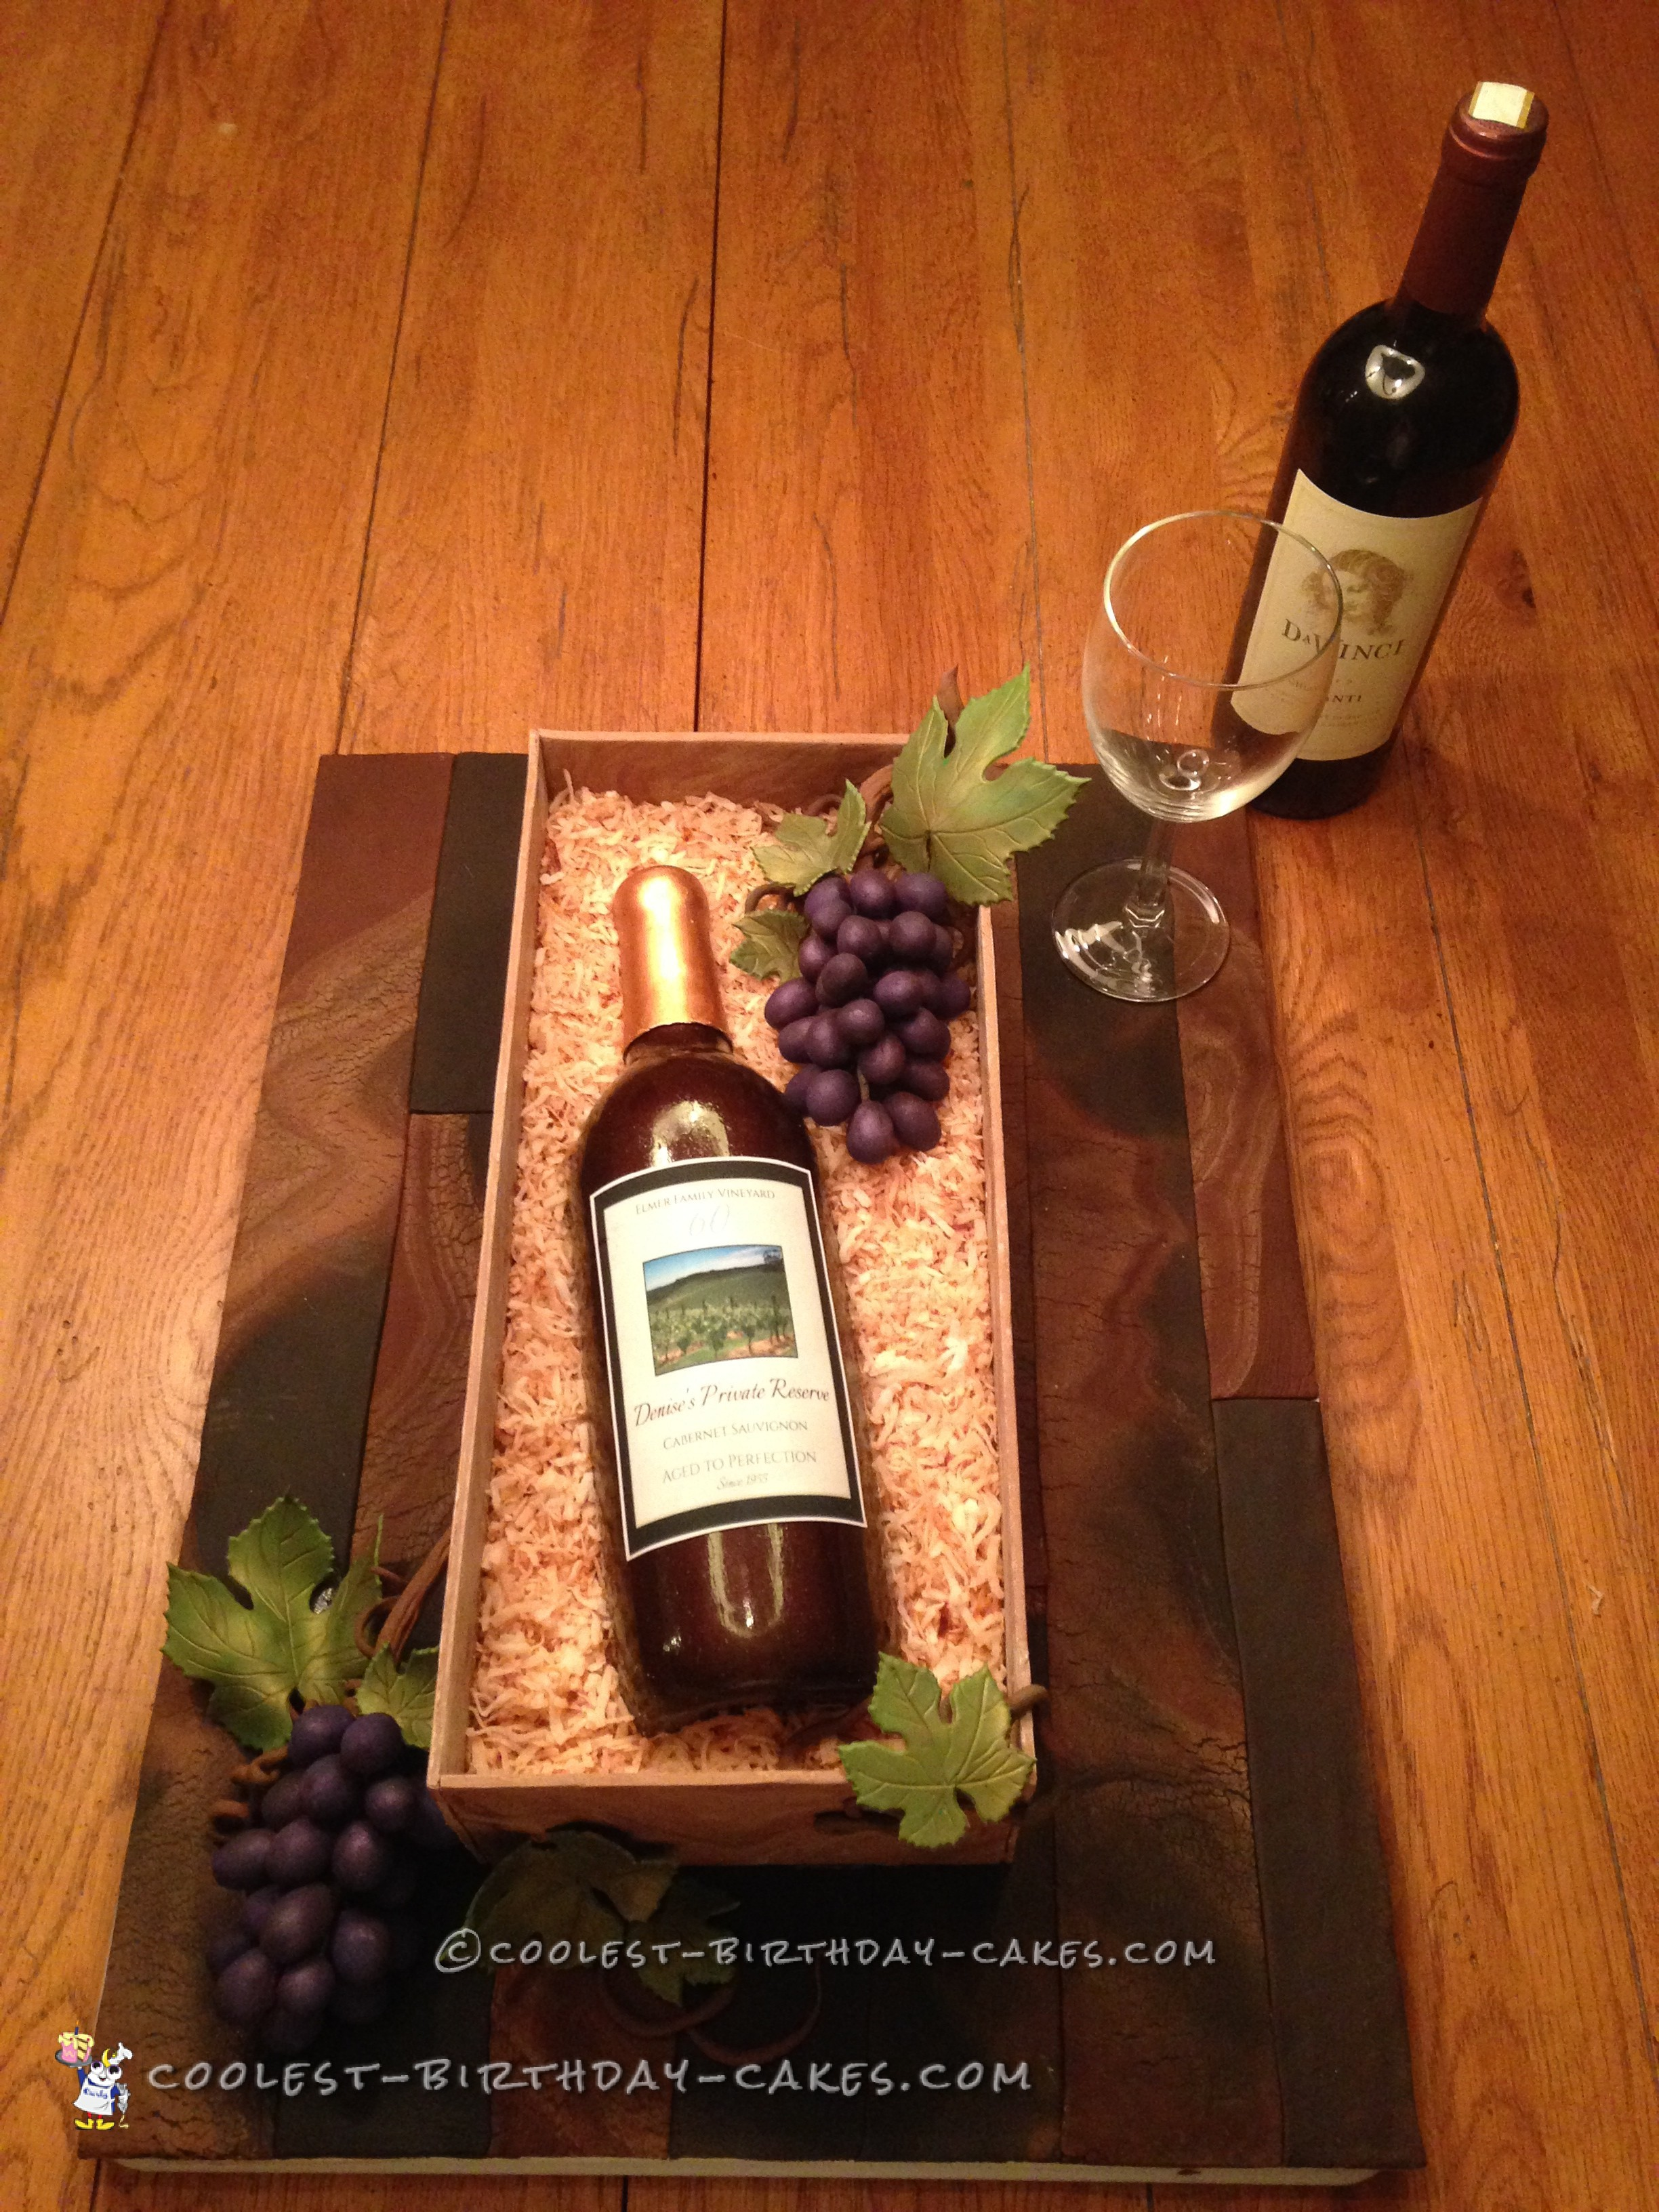 Amazing Wine Bottle Cake For Moms 60th Birthday